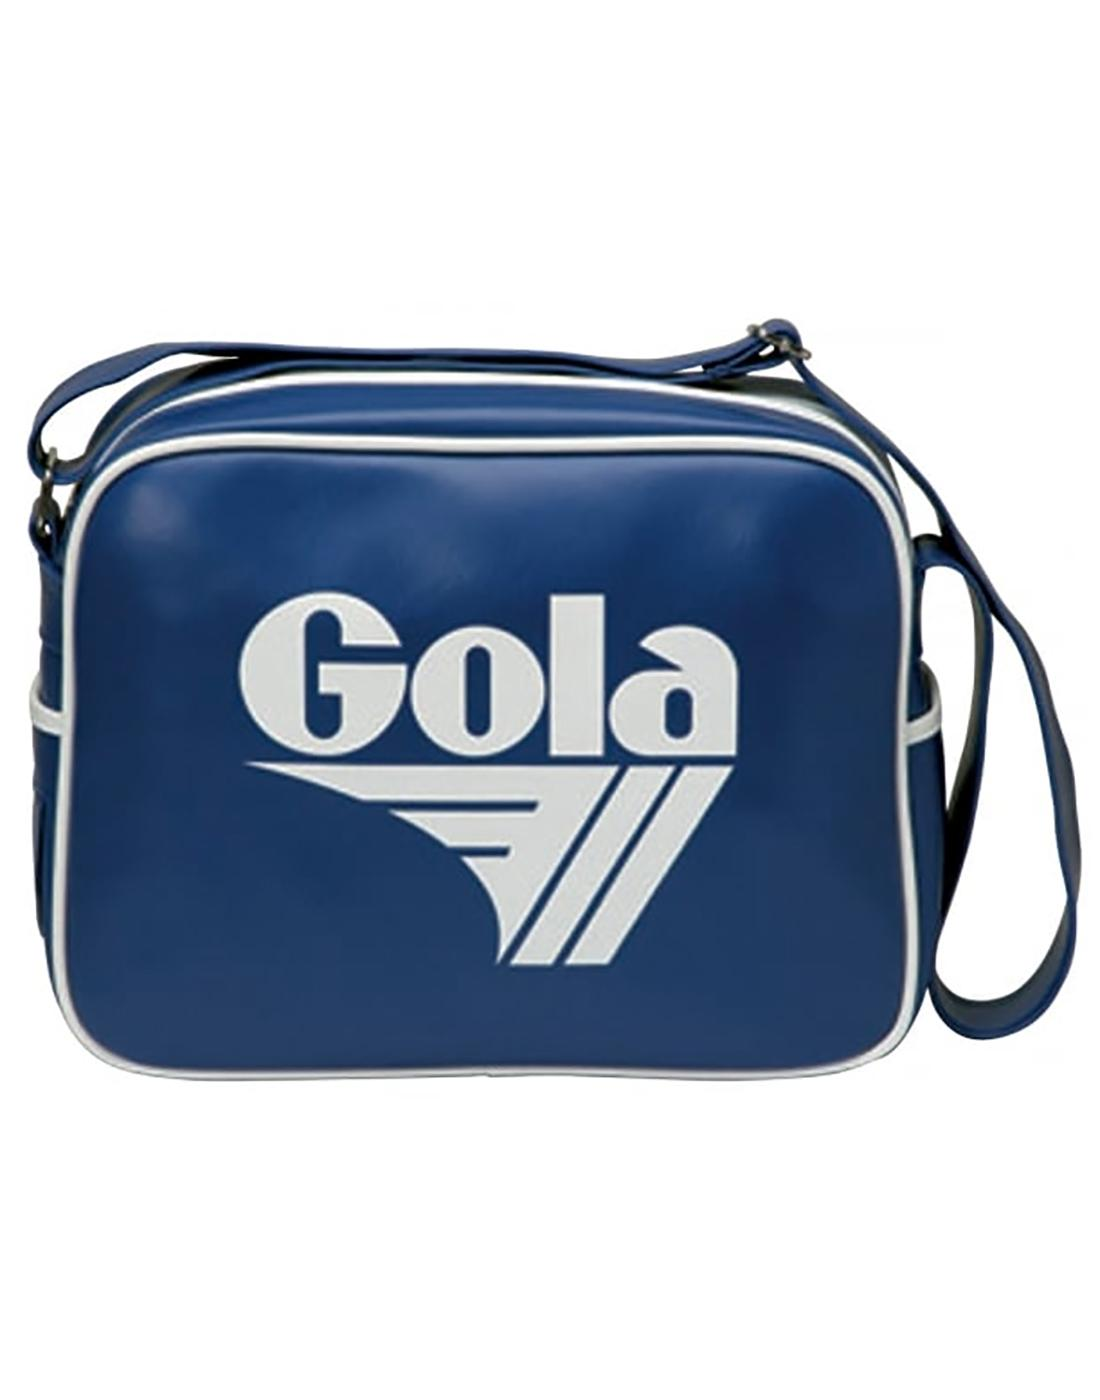 GOLA Redford Retro 70s Shoulder Bag in Reflex Blue